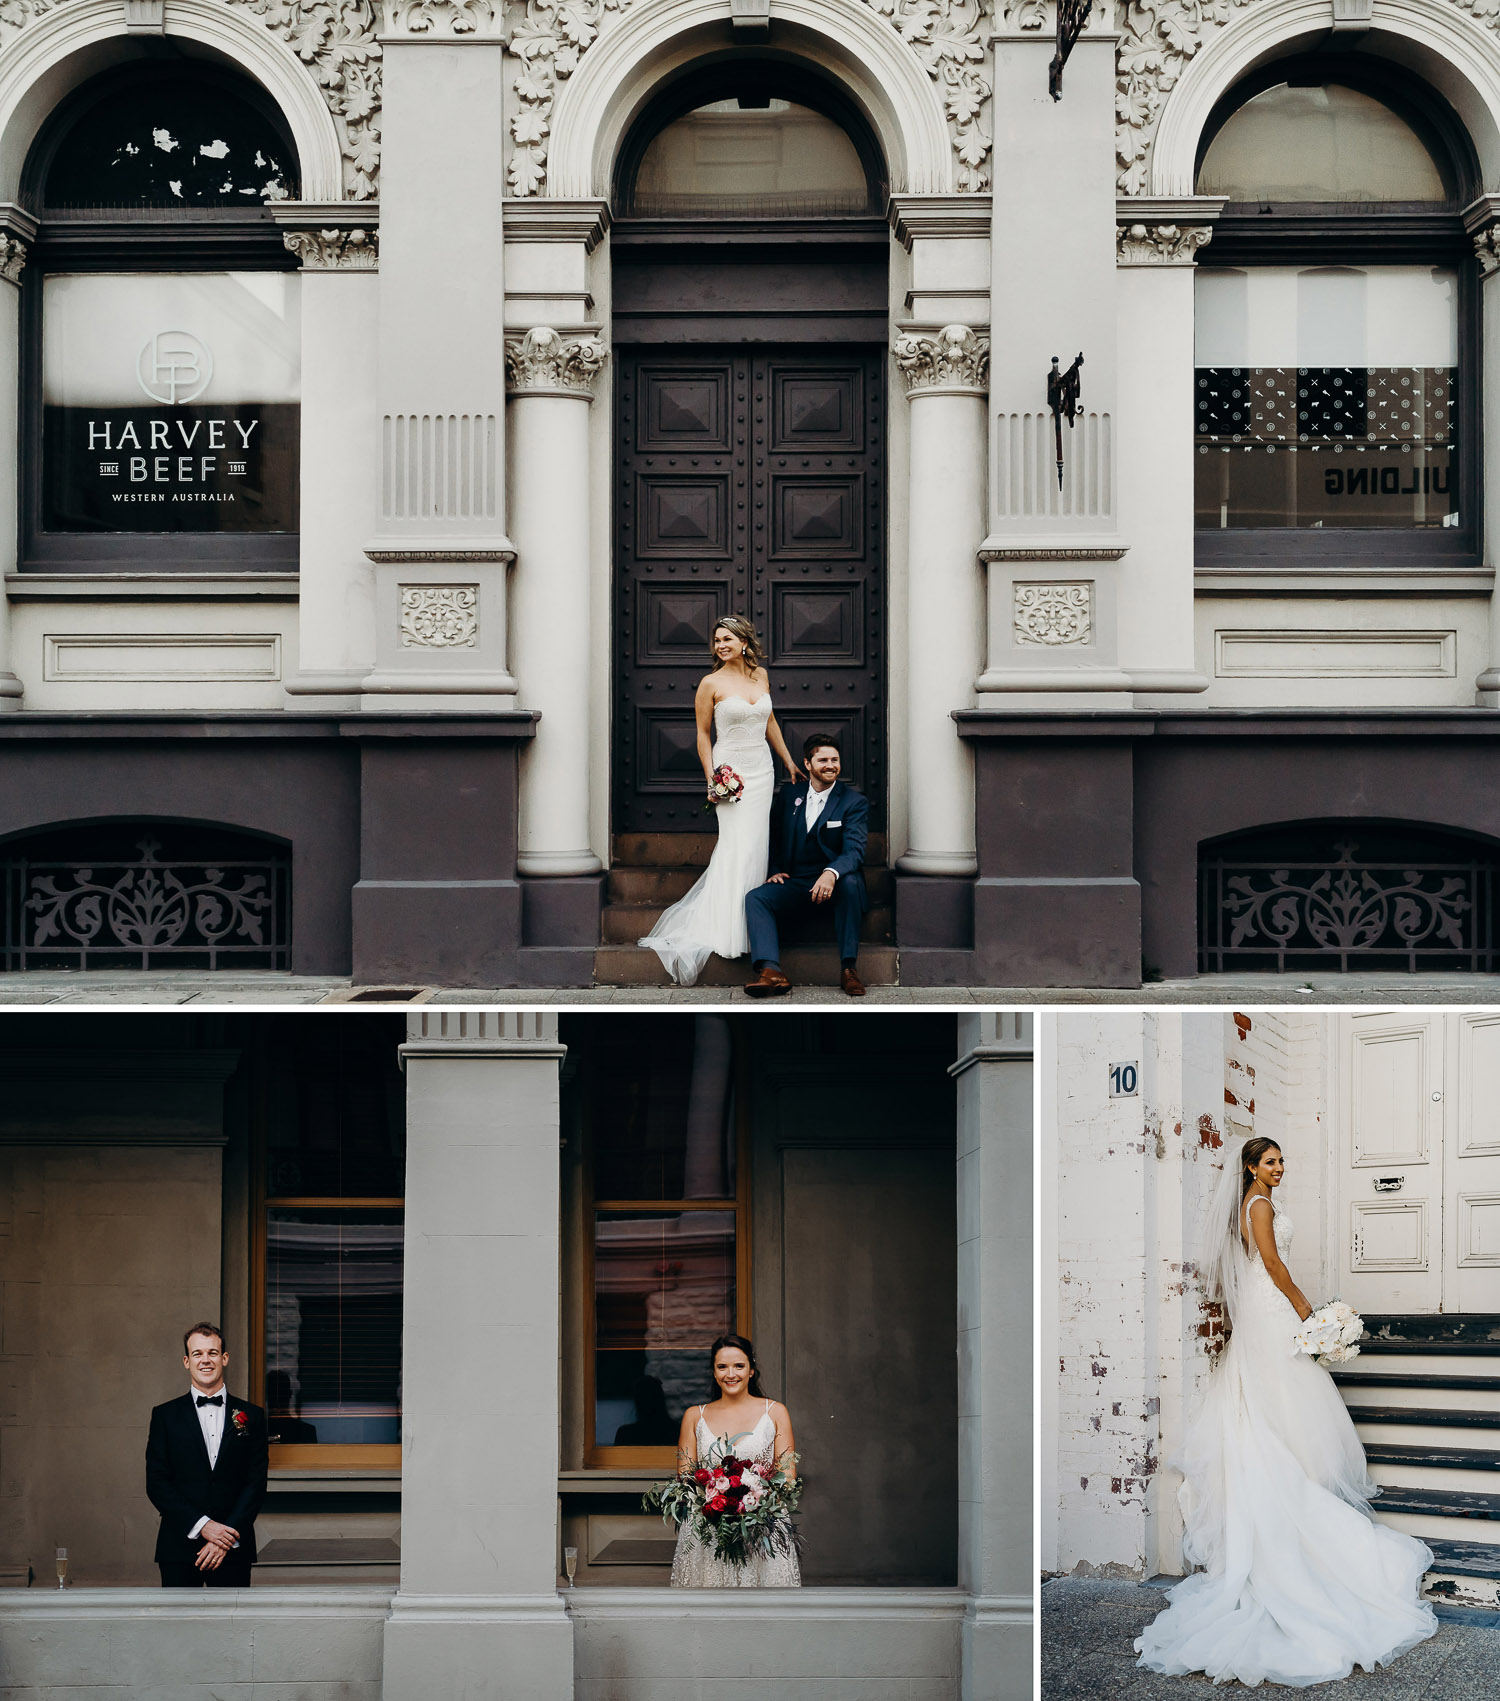 Couple photoshoot at harvey beef, couple prewed and engagement photoshoot, couple photoshoot in the city, couple photoshoot in perth, couple photoshoot on steps, couple photoshoot in gown and suit in perth